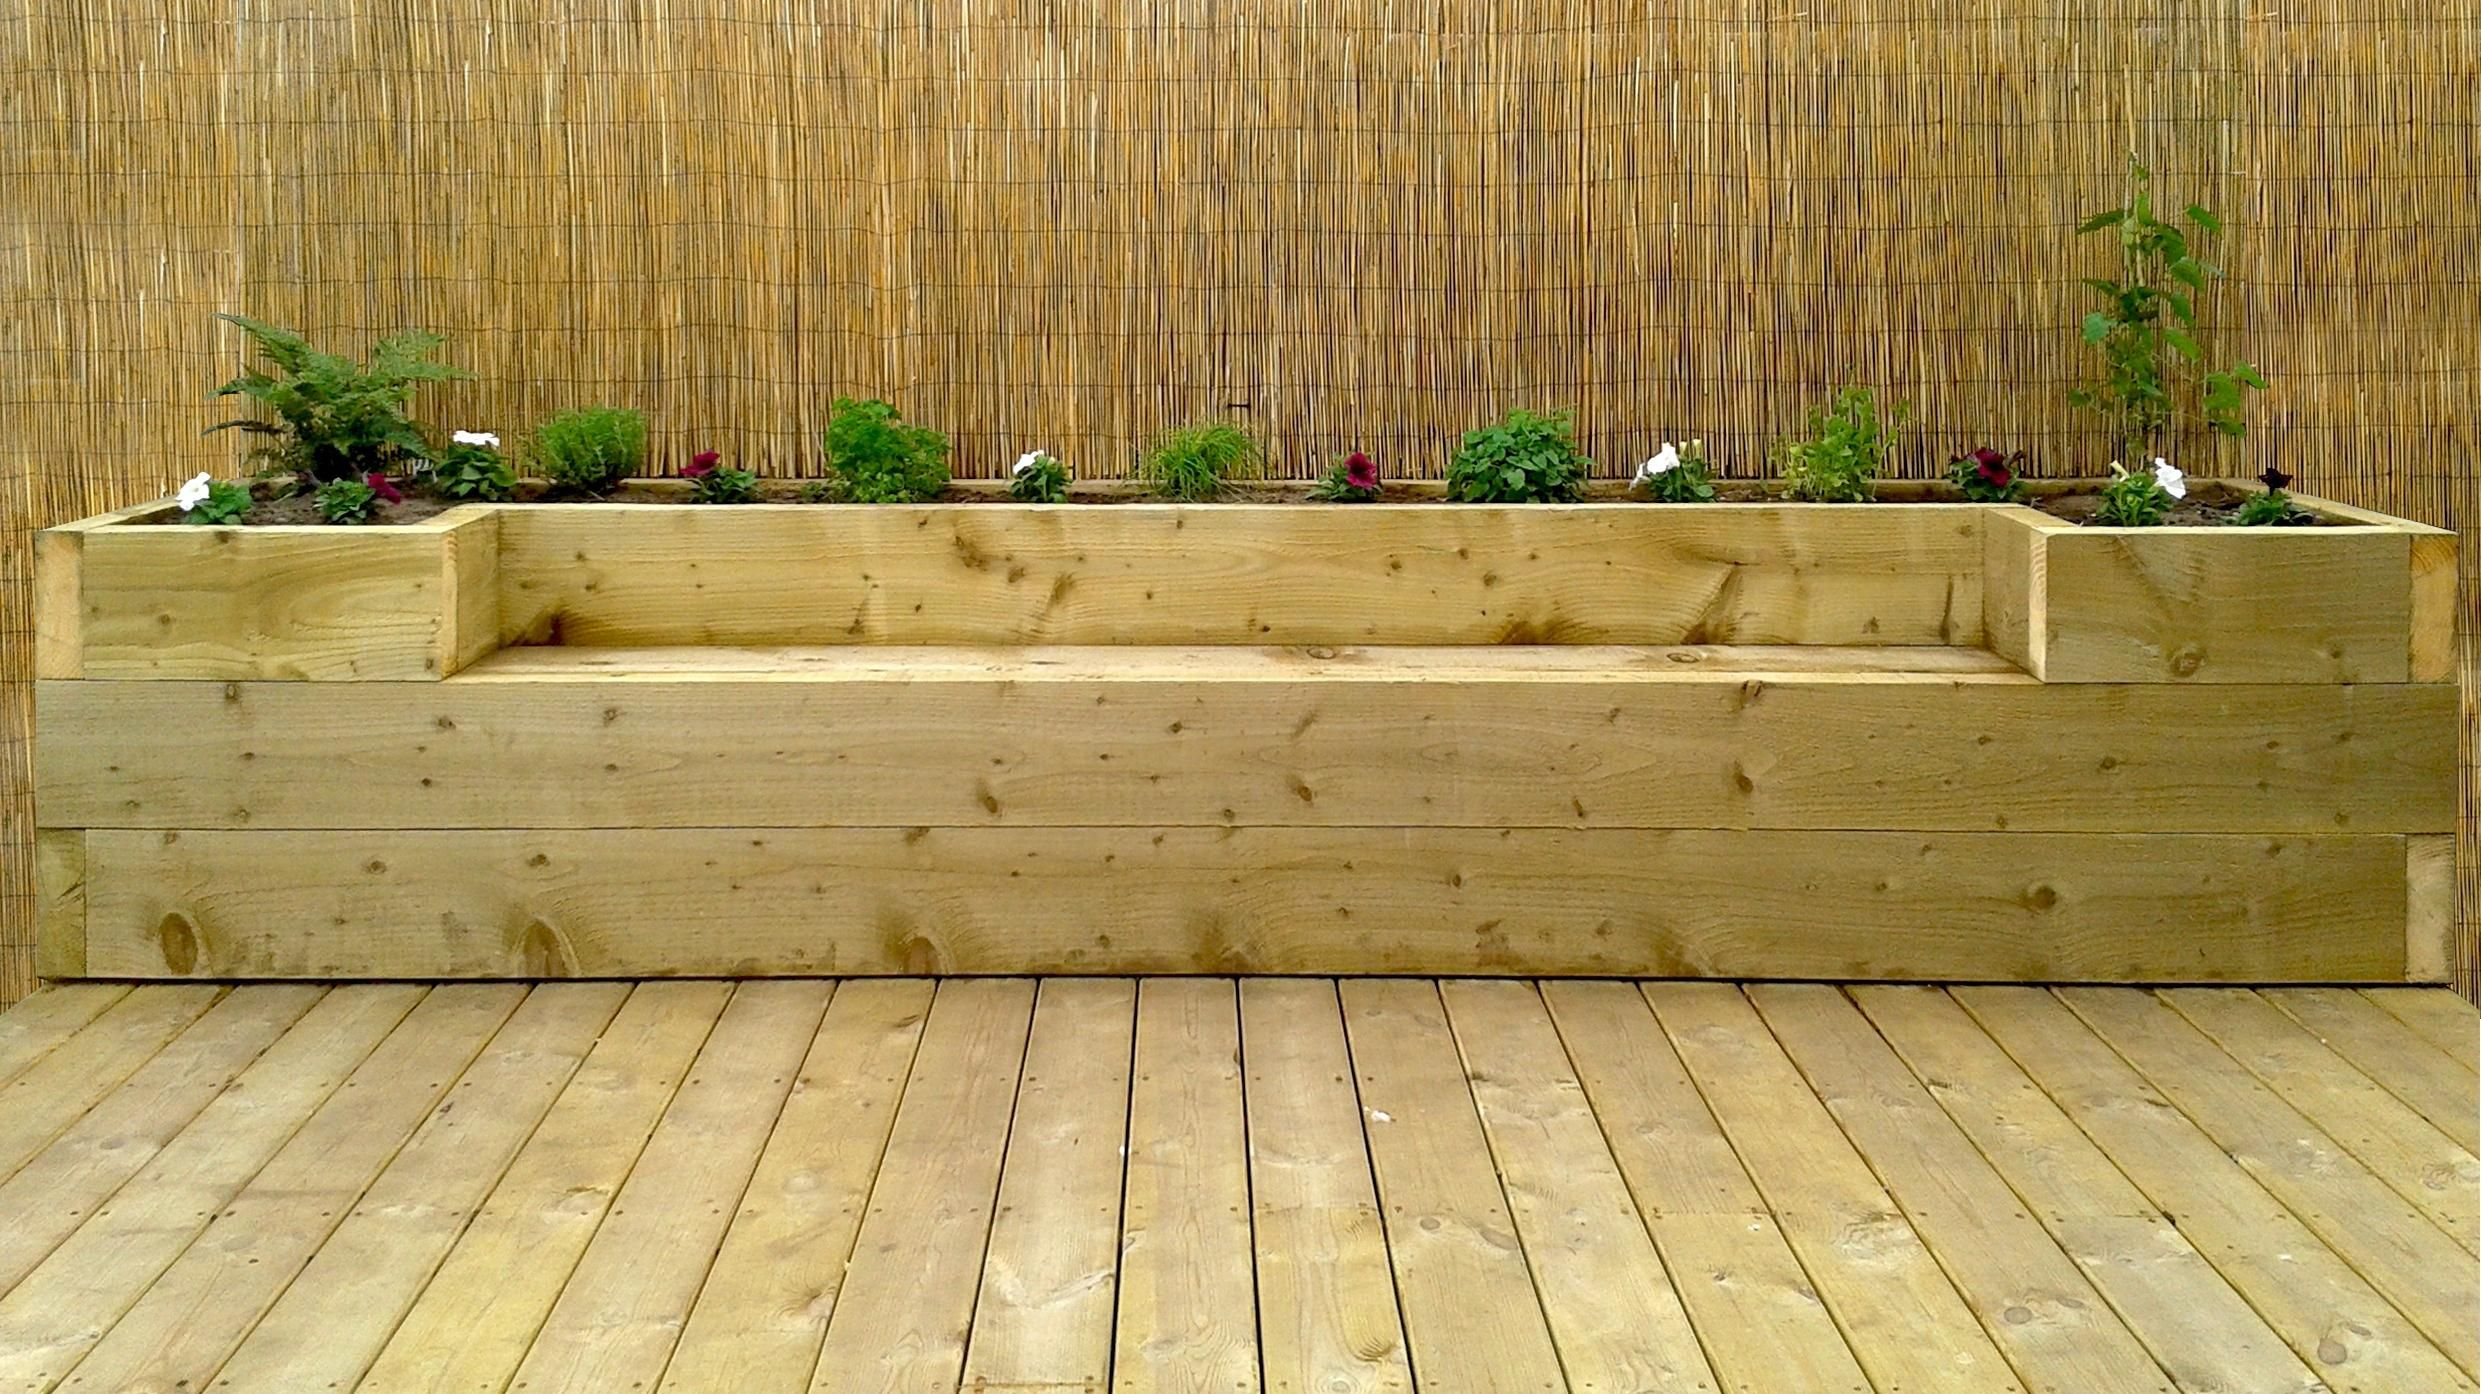 Softwood decking for the garden with a full depth raised